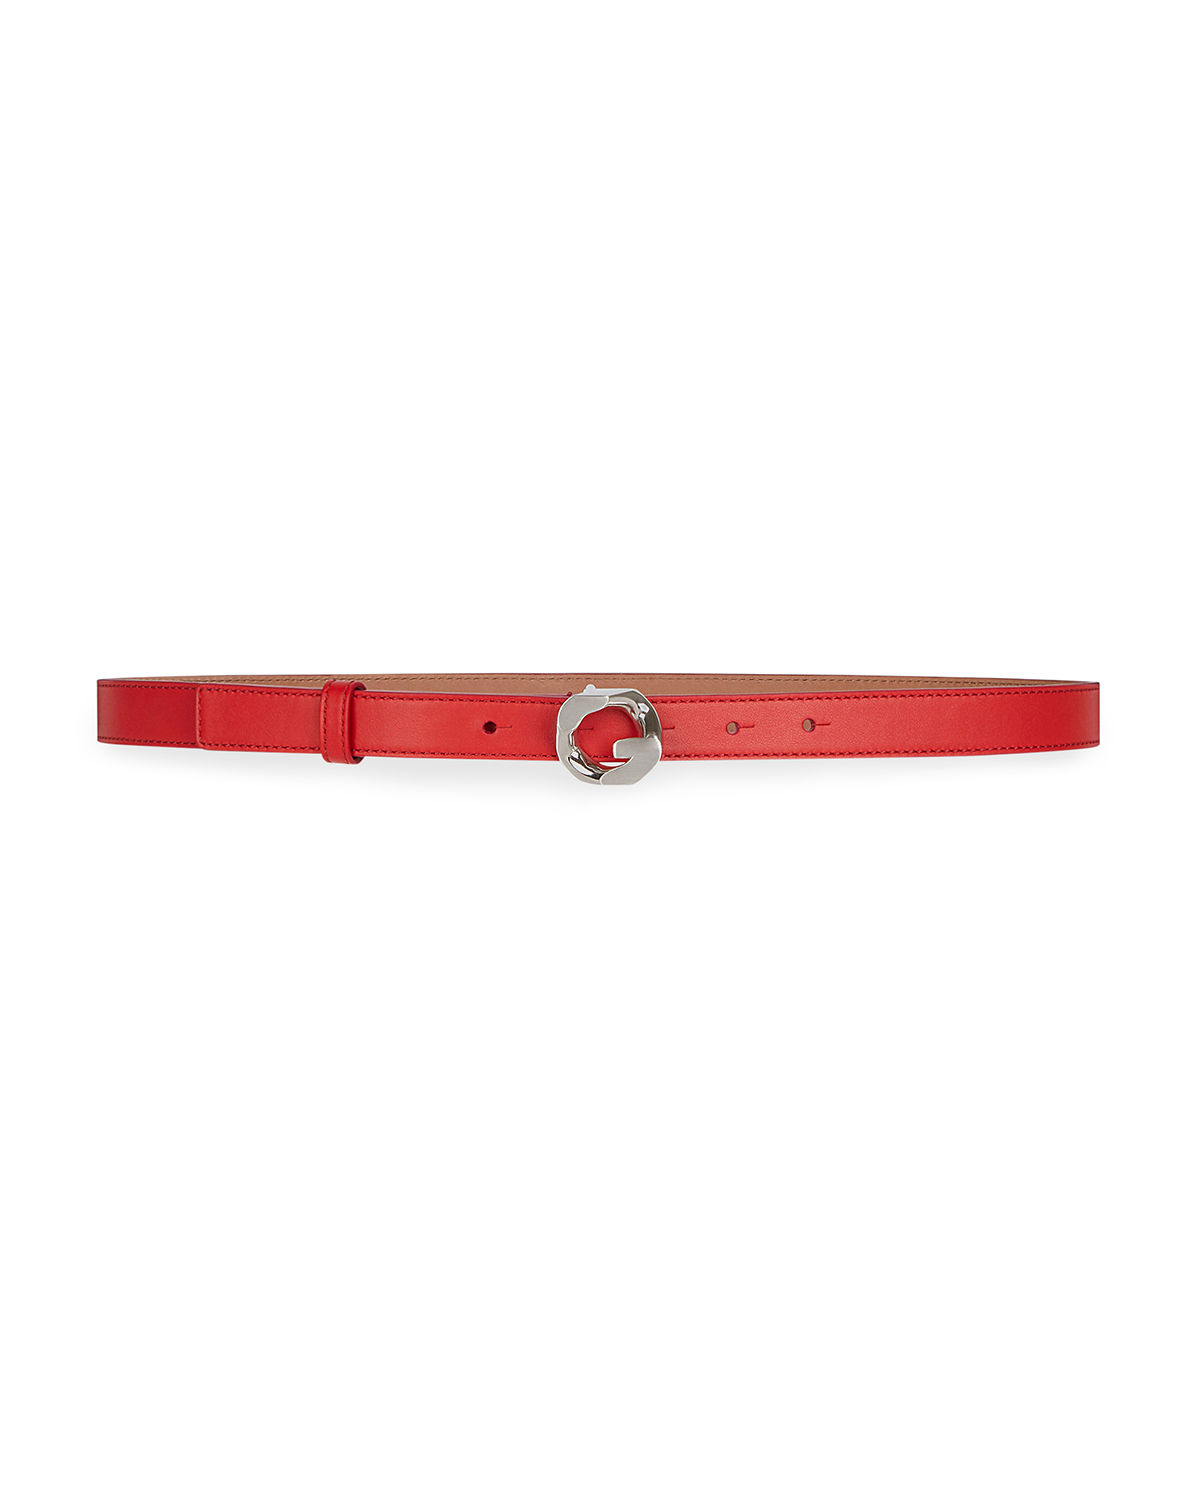 G Chain 20mm Leather Belt